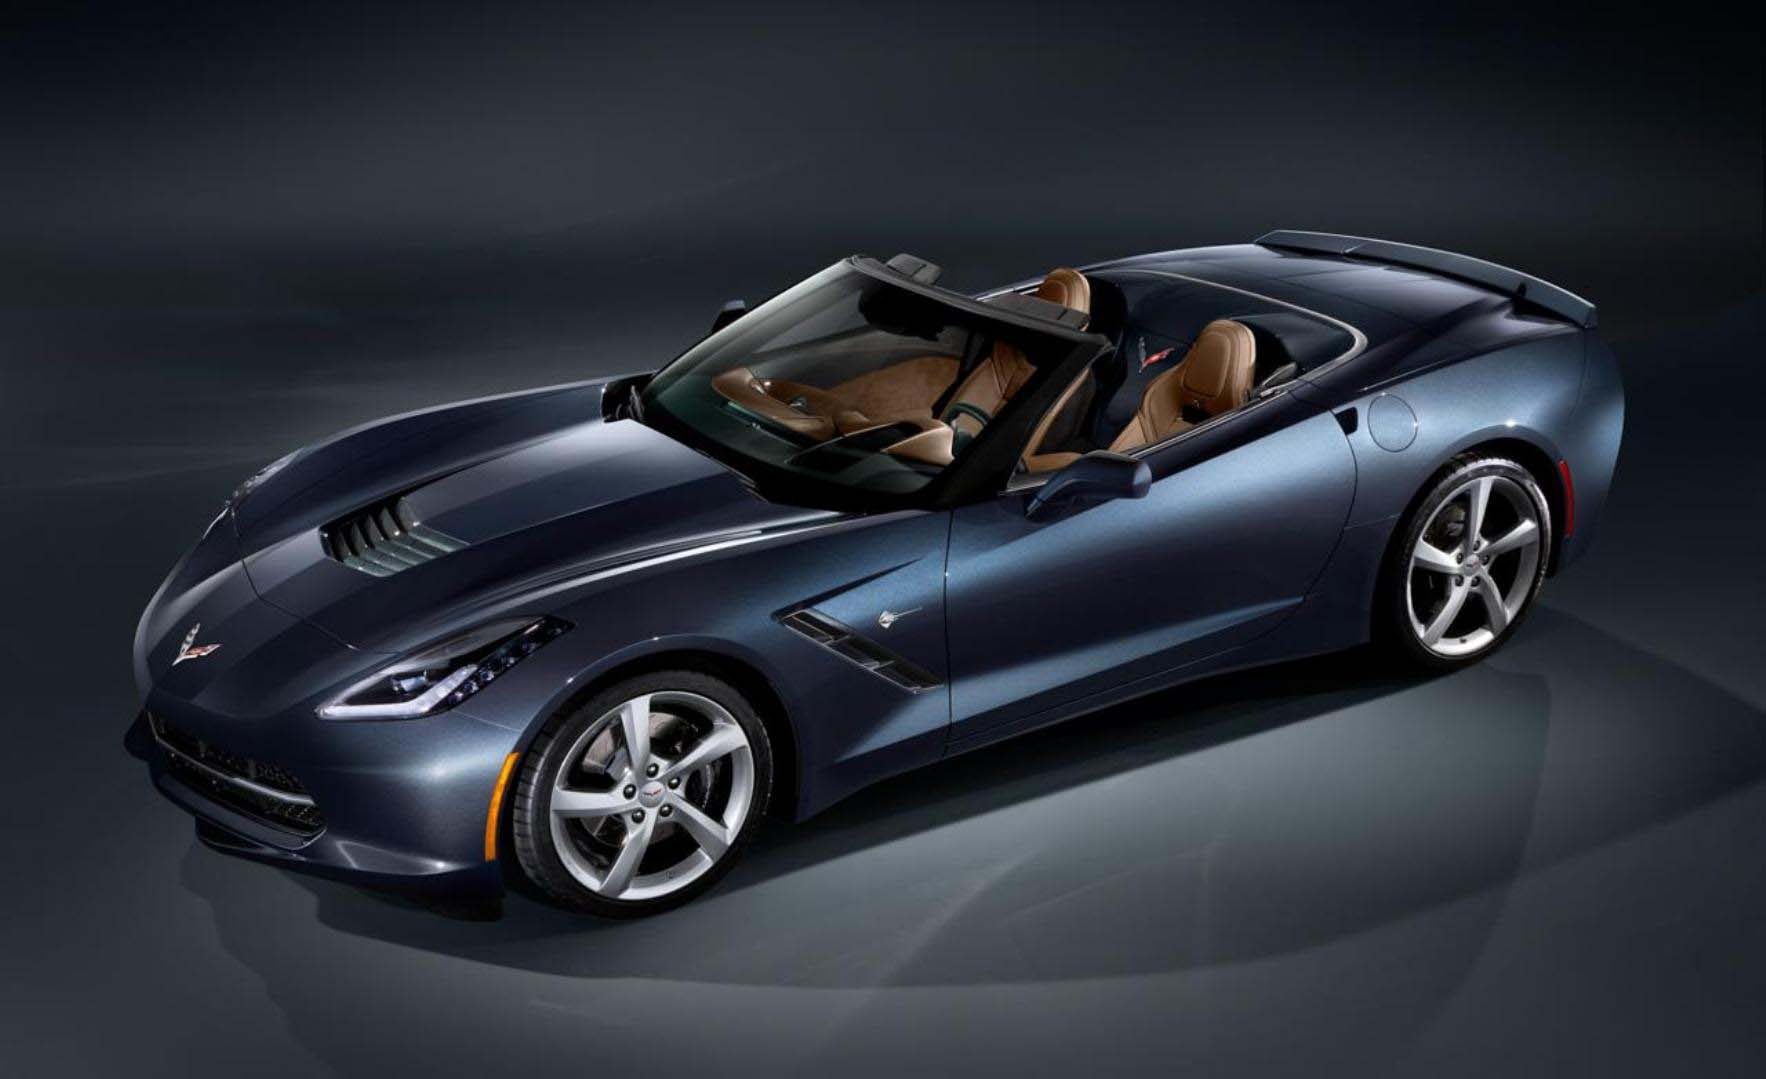 2015 Chevrolet Corvette Stingray convertible awesome car picture